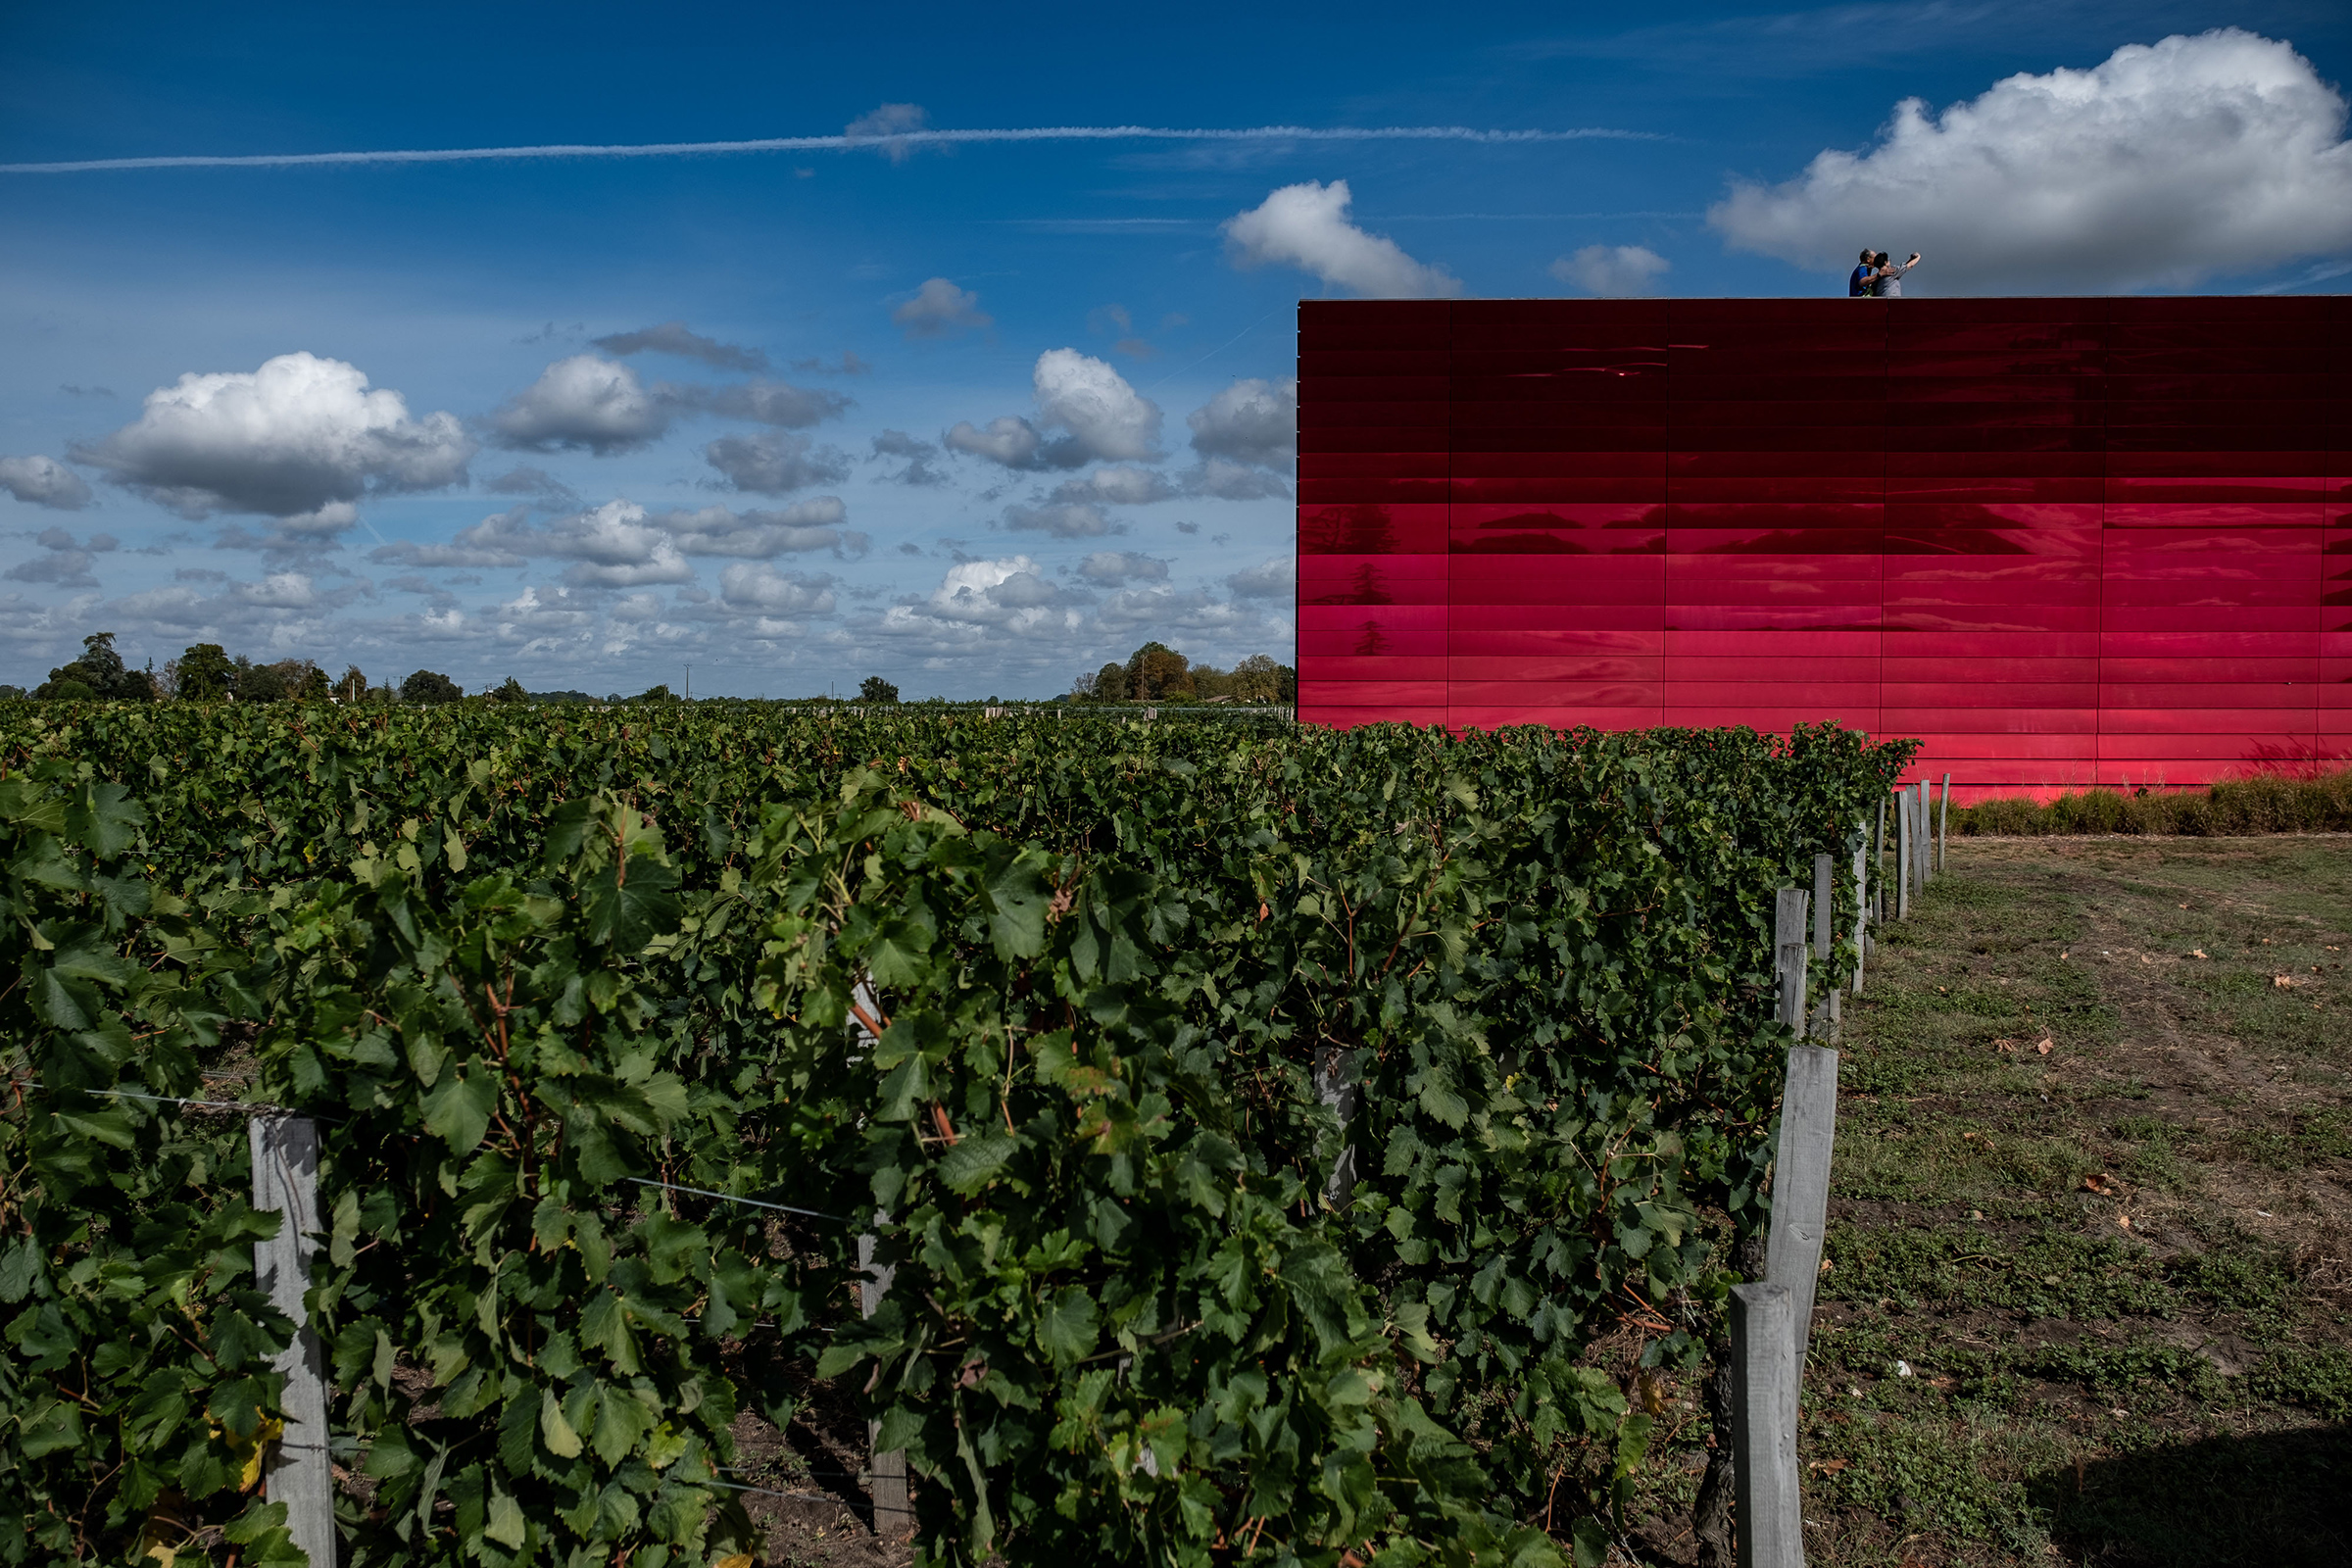 Visitors take a 'selfie' photograph on the roof garden of the Terasse Rouge winery and restaurant beside the vineyards at Chateau La Dominique in Pomerol, France, on Sept. 23, 2019